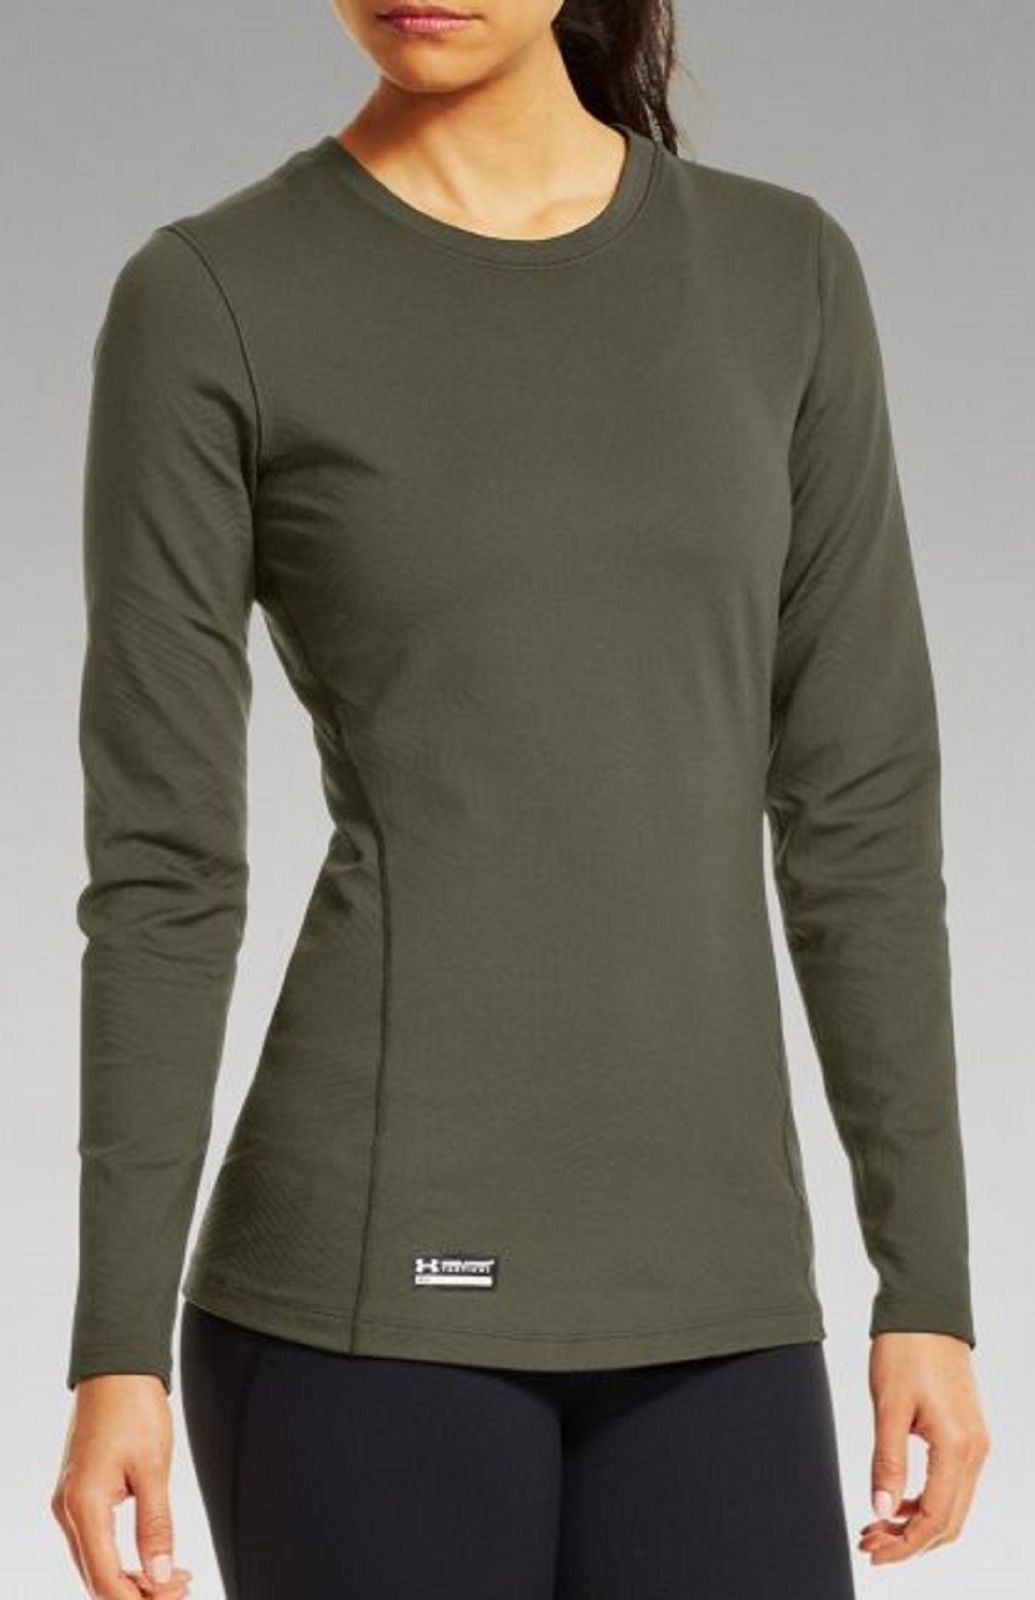 cd31714cd6e0 Women s Under Armour Fitted Tactical Crew Shirt UA ColdGear Performance Top